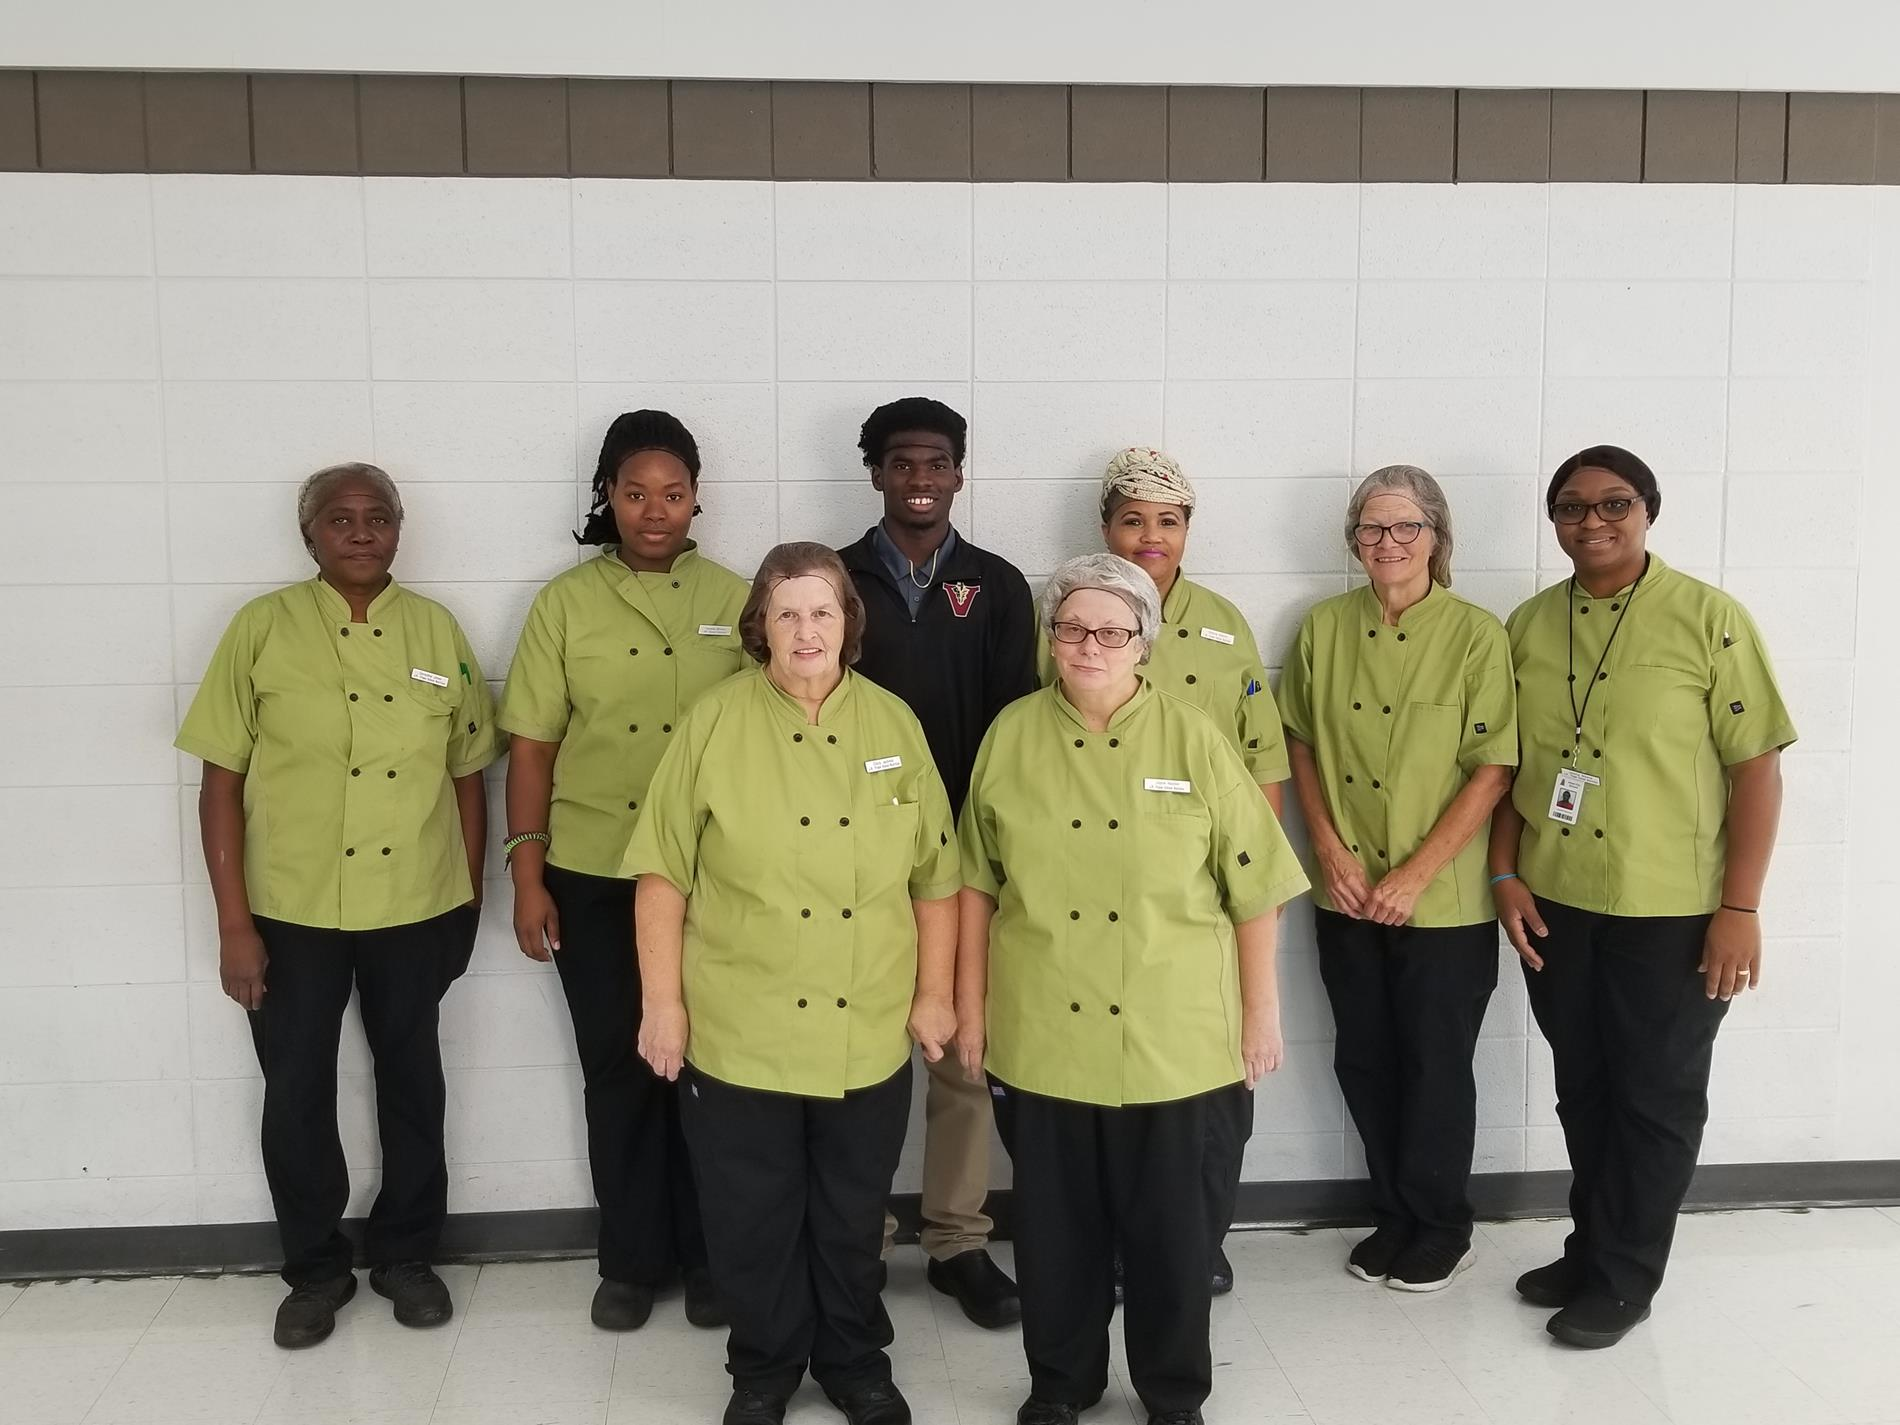 Trippe Lunchroom Staff